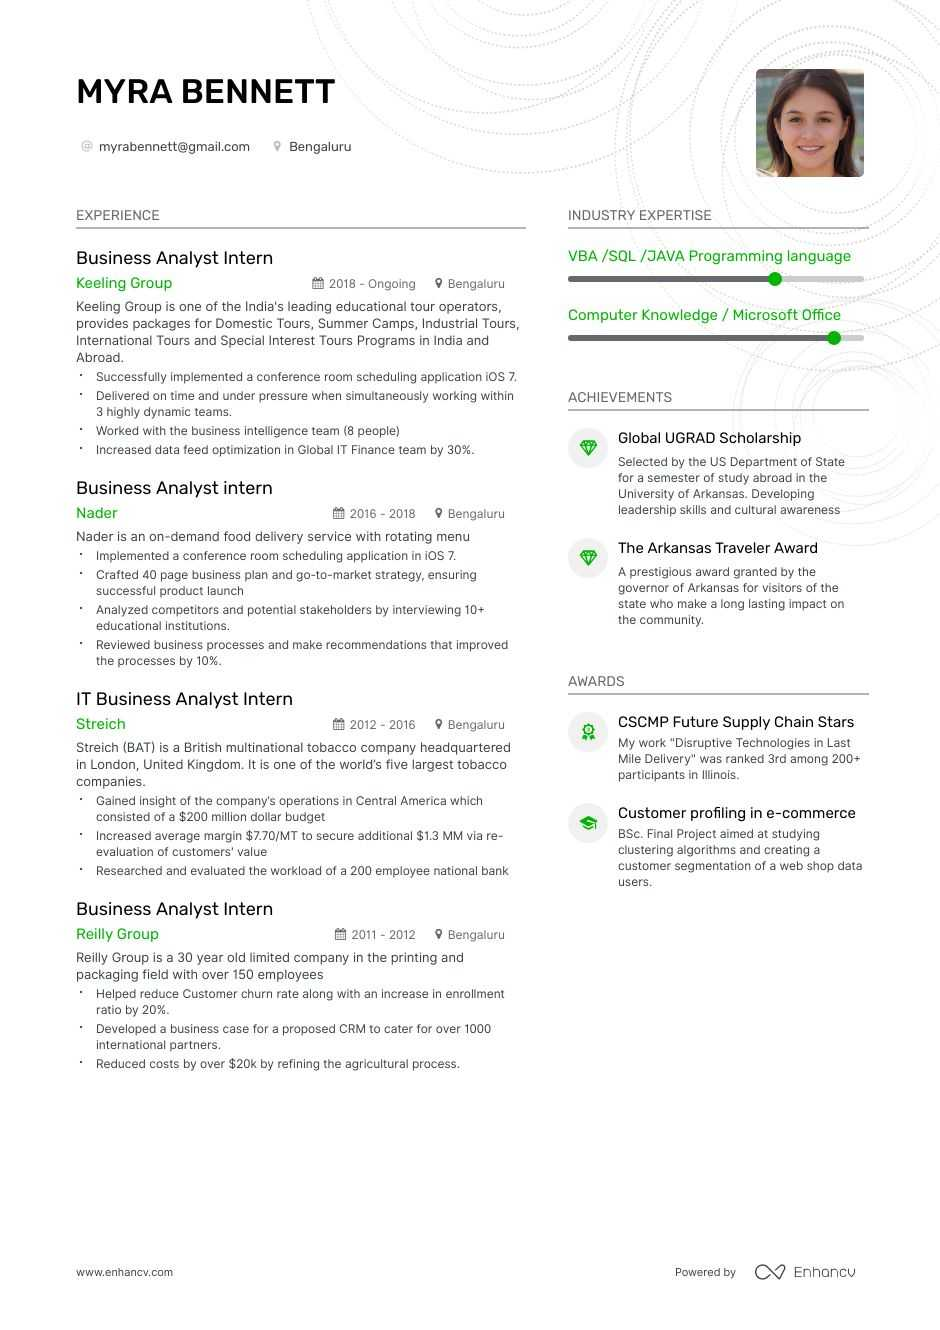 Business Analyst Intern Resume Example And Guide For 2020